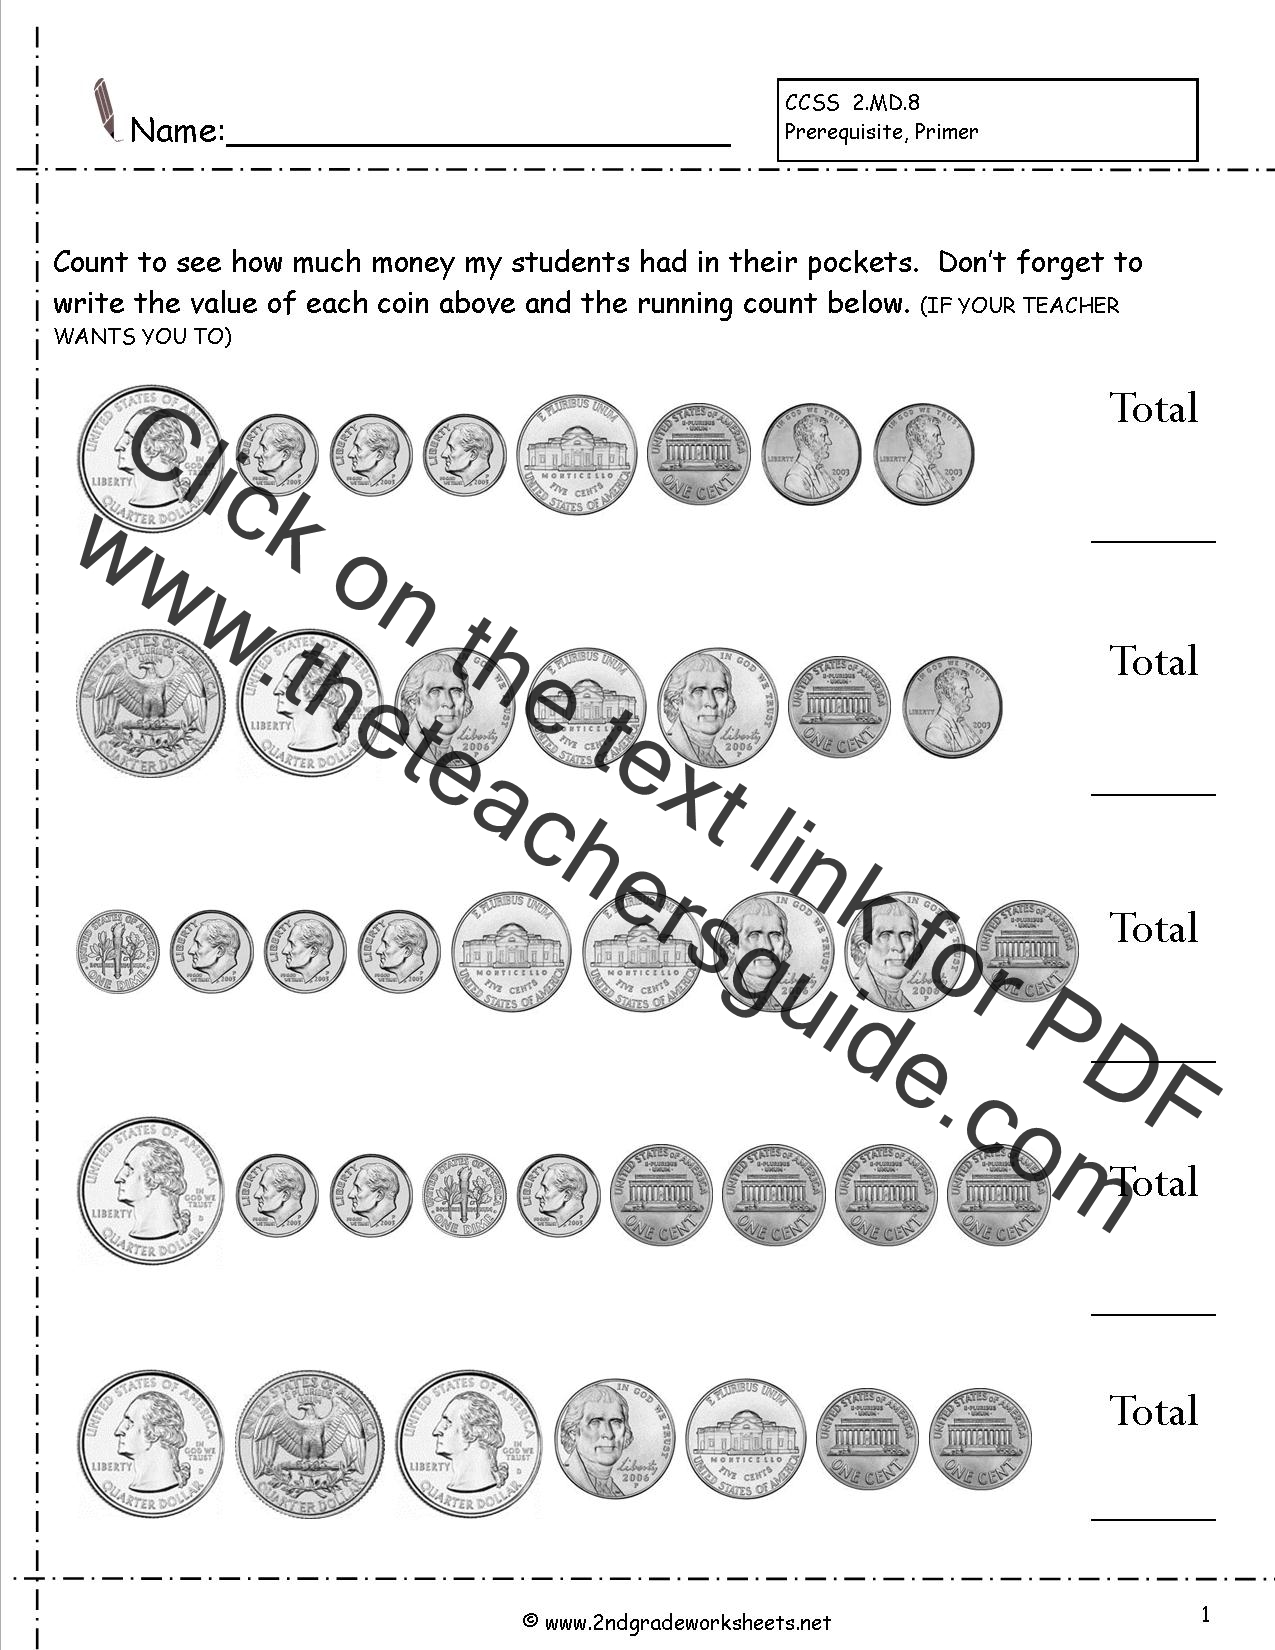 Worksheet First Grade Counting Money ccss 2 md 8 worksheets counting coins money worksheets